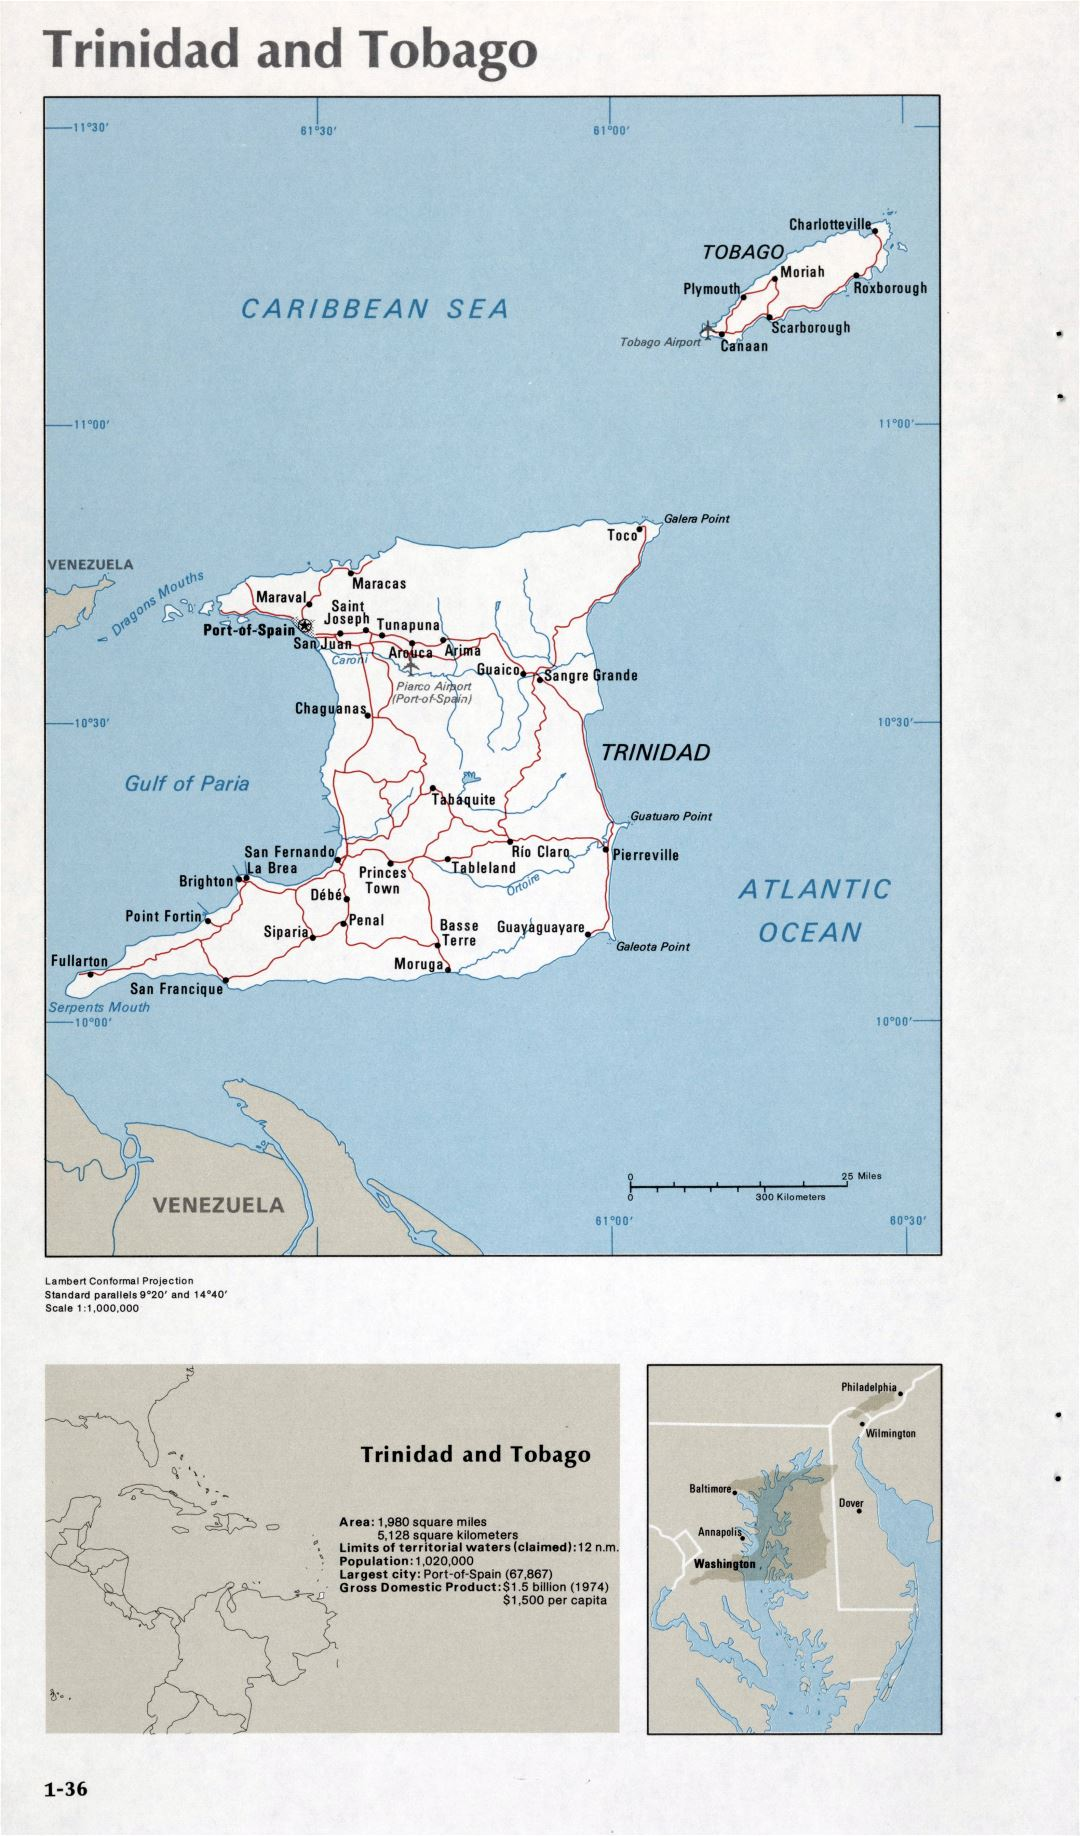 Map of Trinidad and Tobago (1-36)